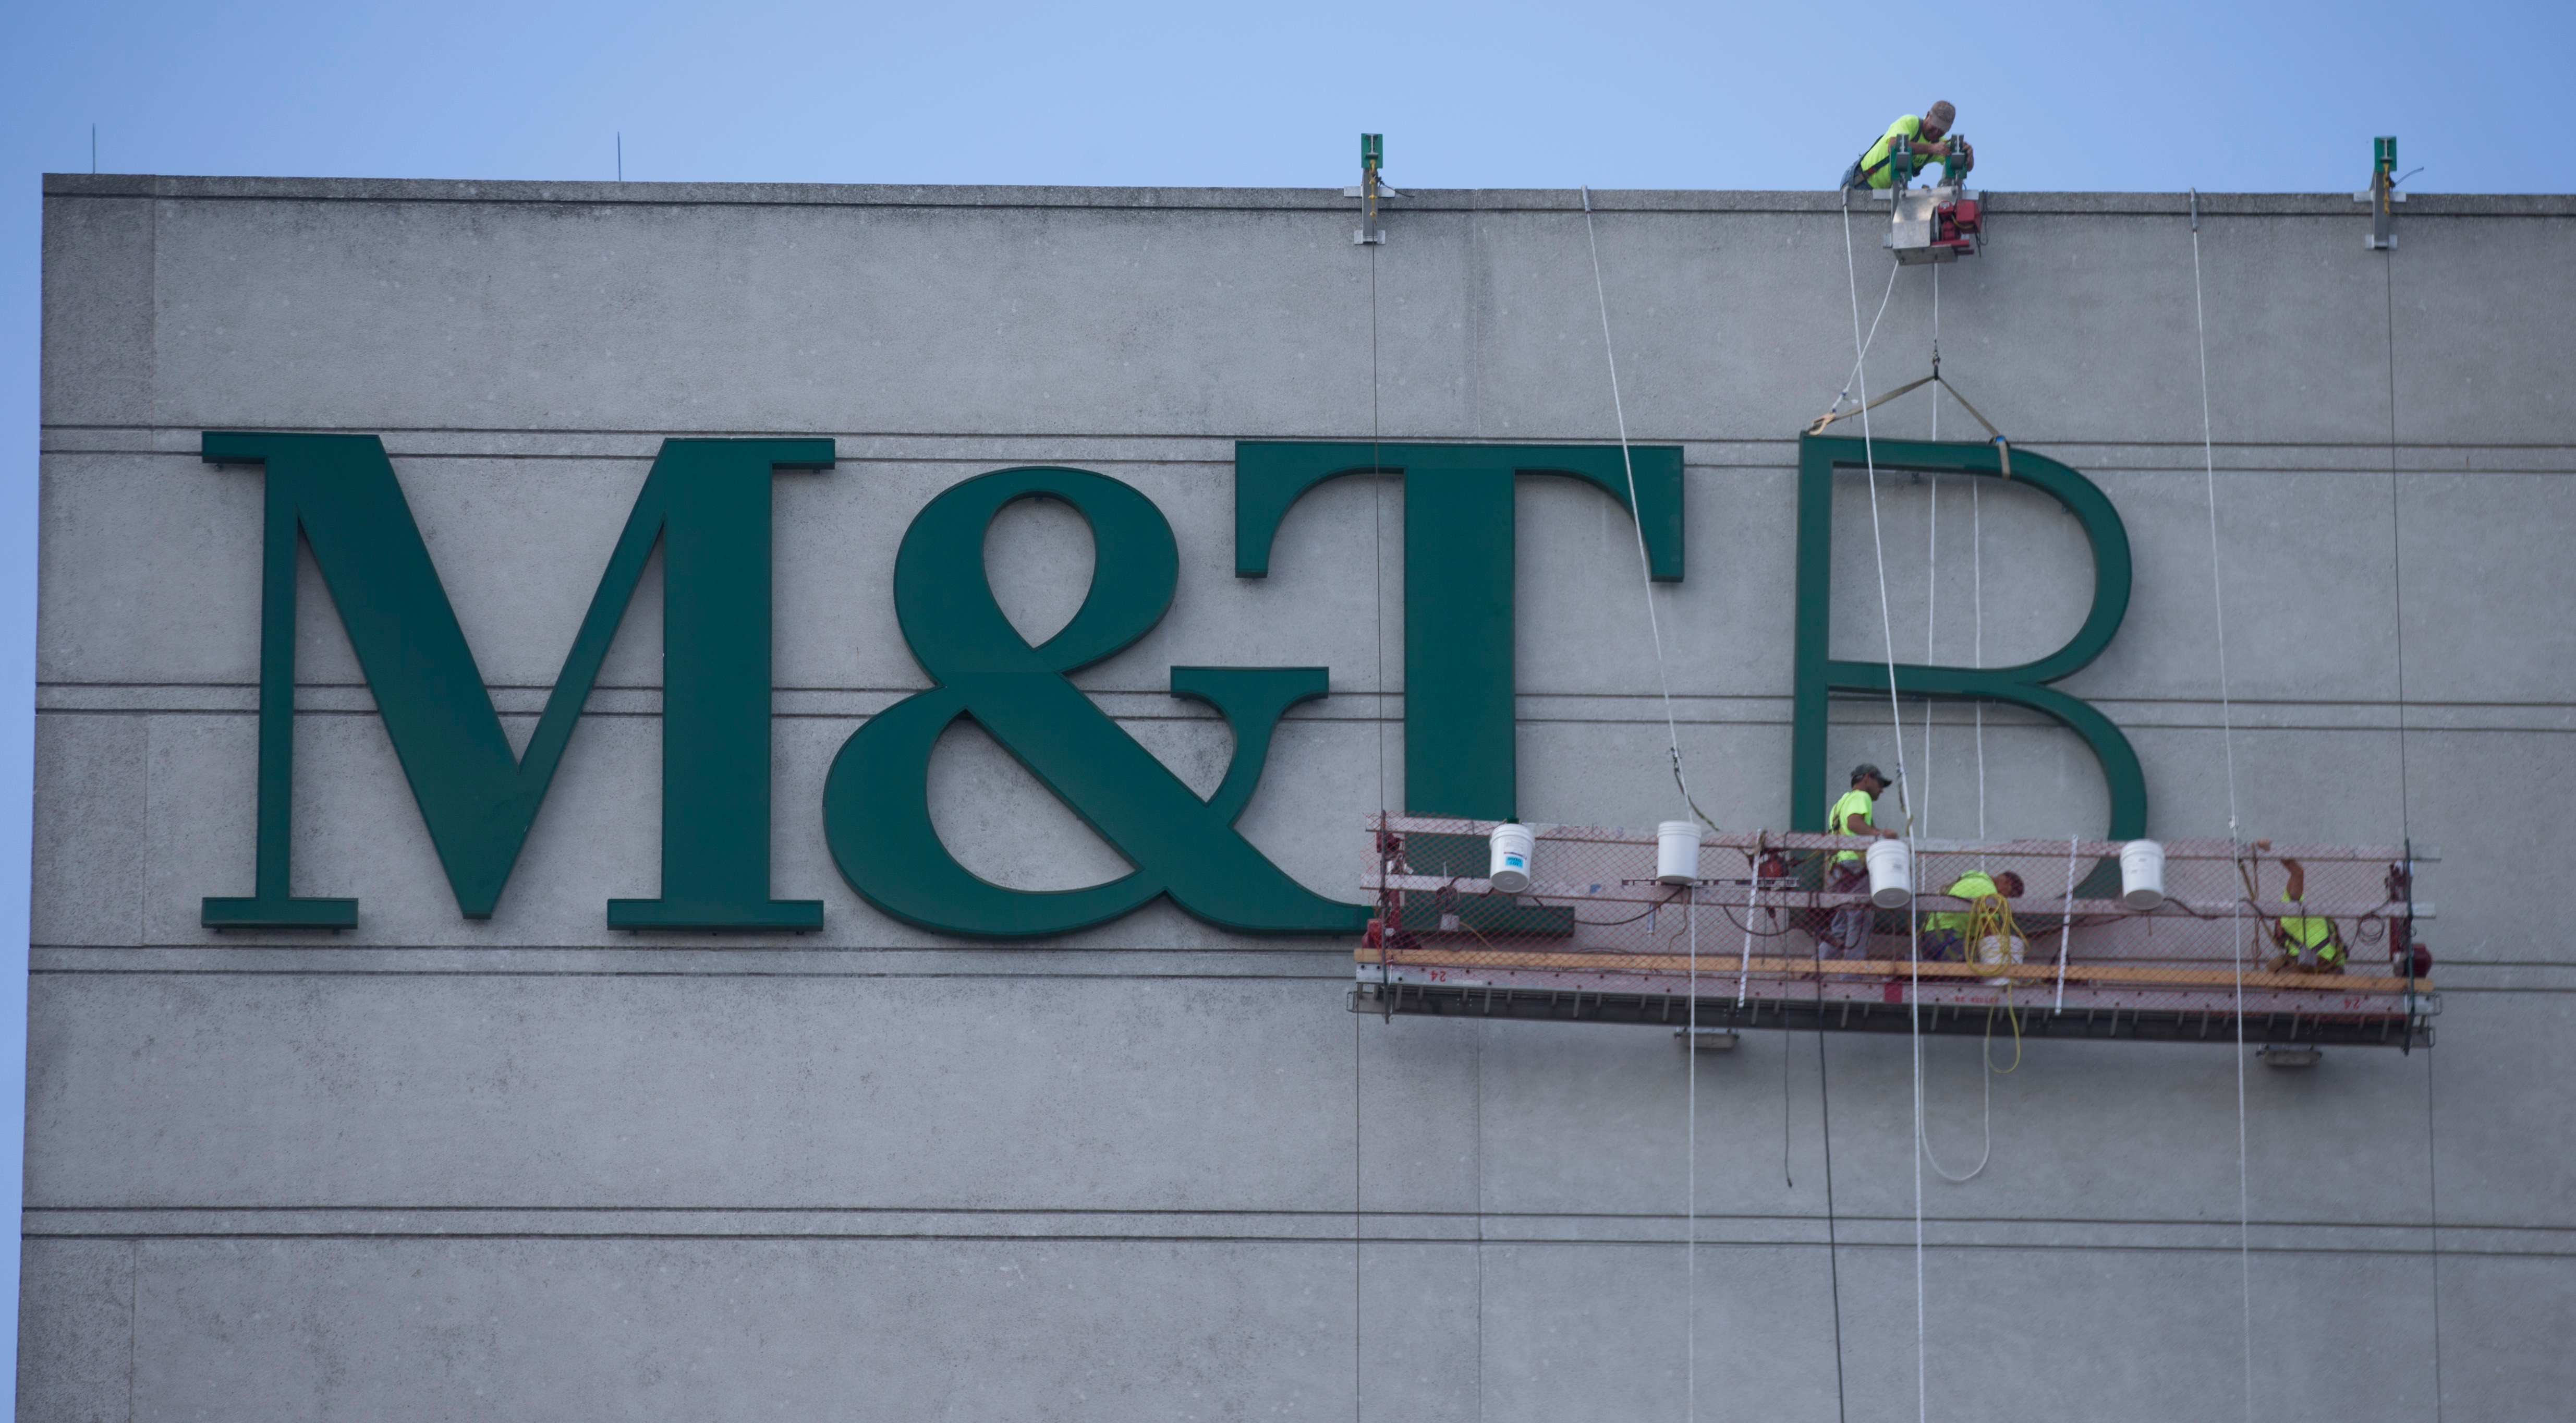 Wilmers leads M&T to growth, dominance far beyond its roots